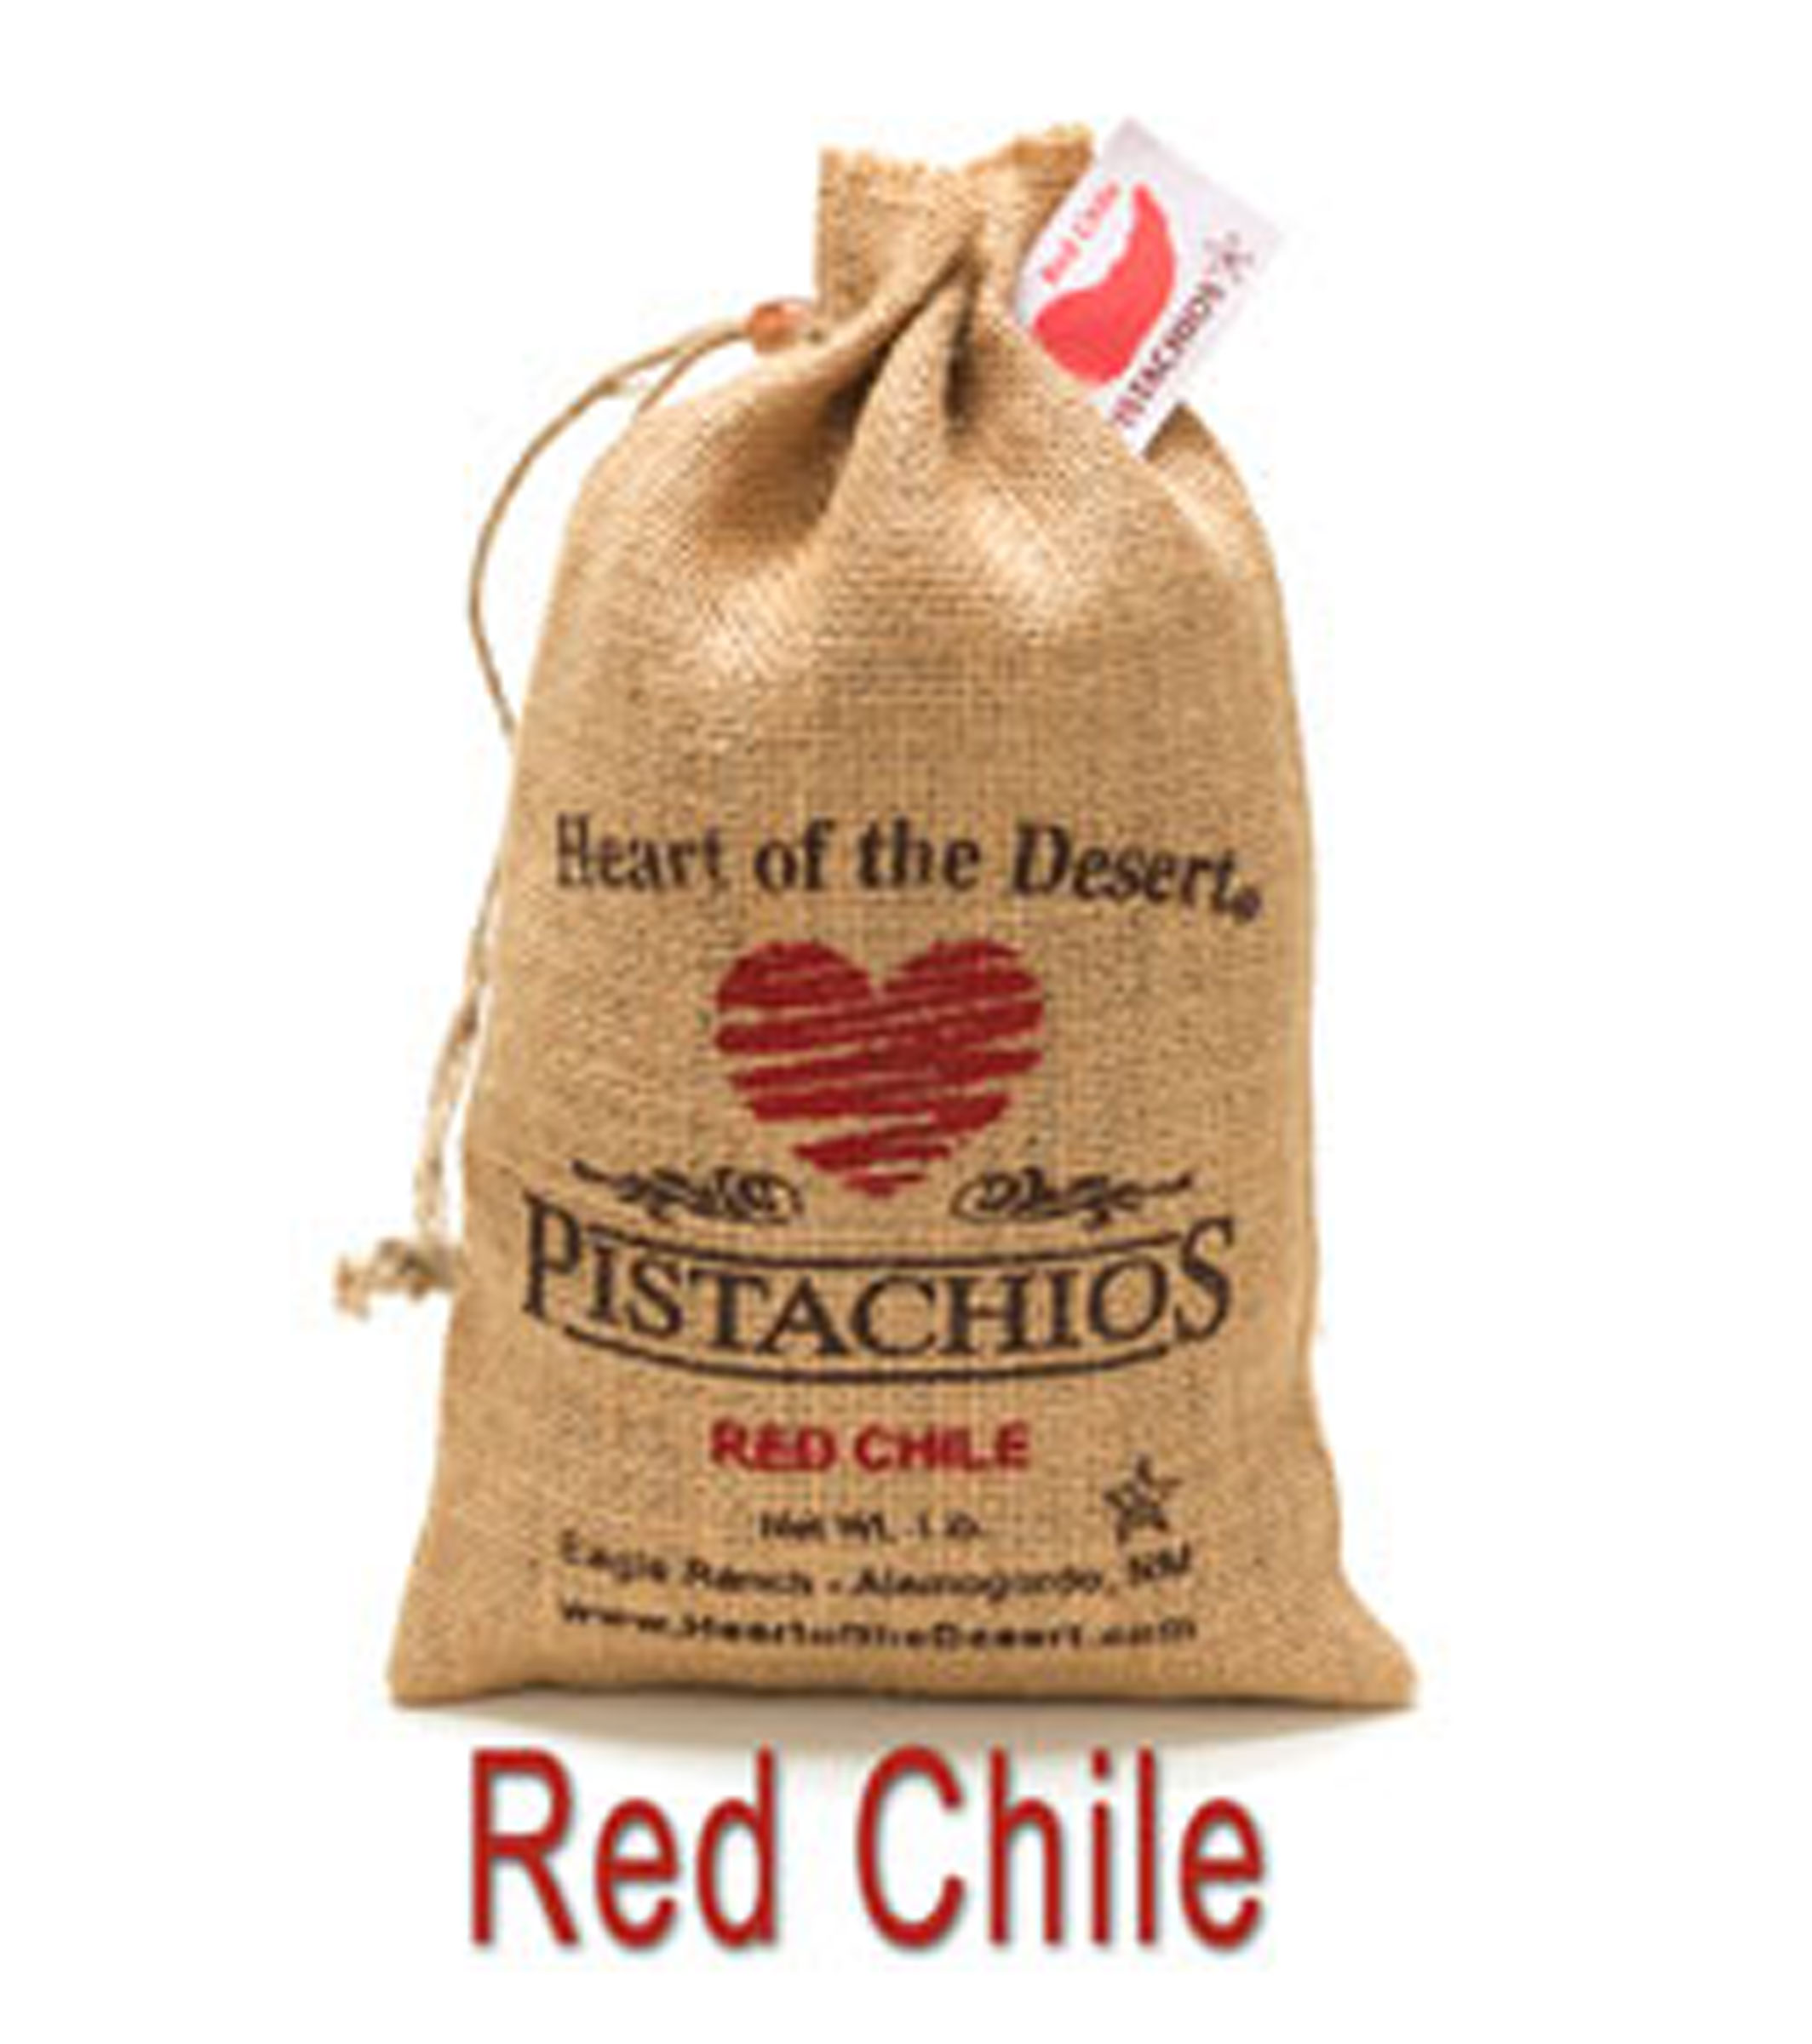 Heart of the Desert Red Chile Pistachios (In-Shell)